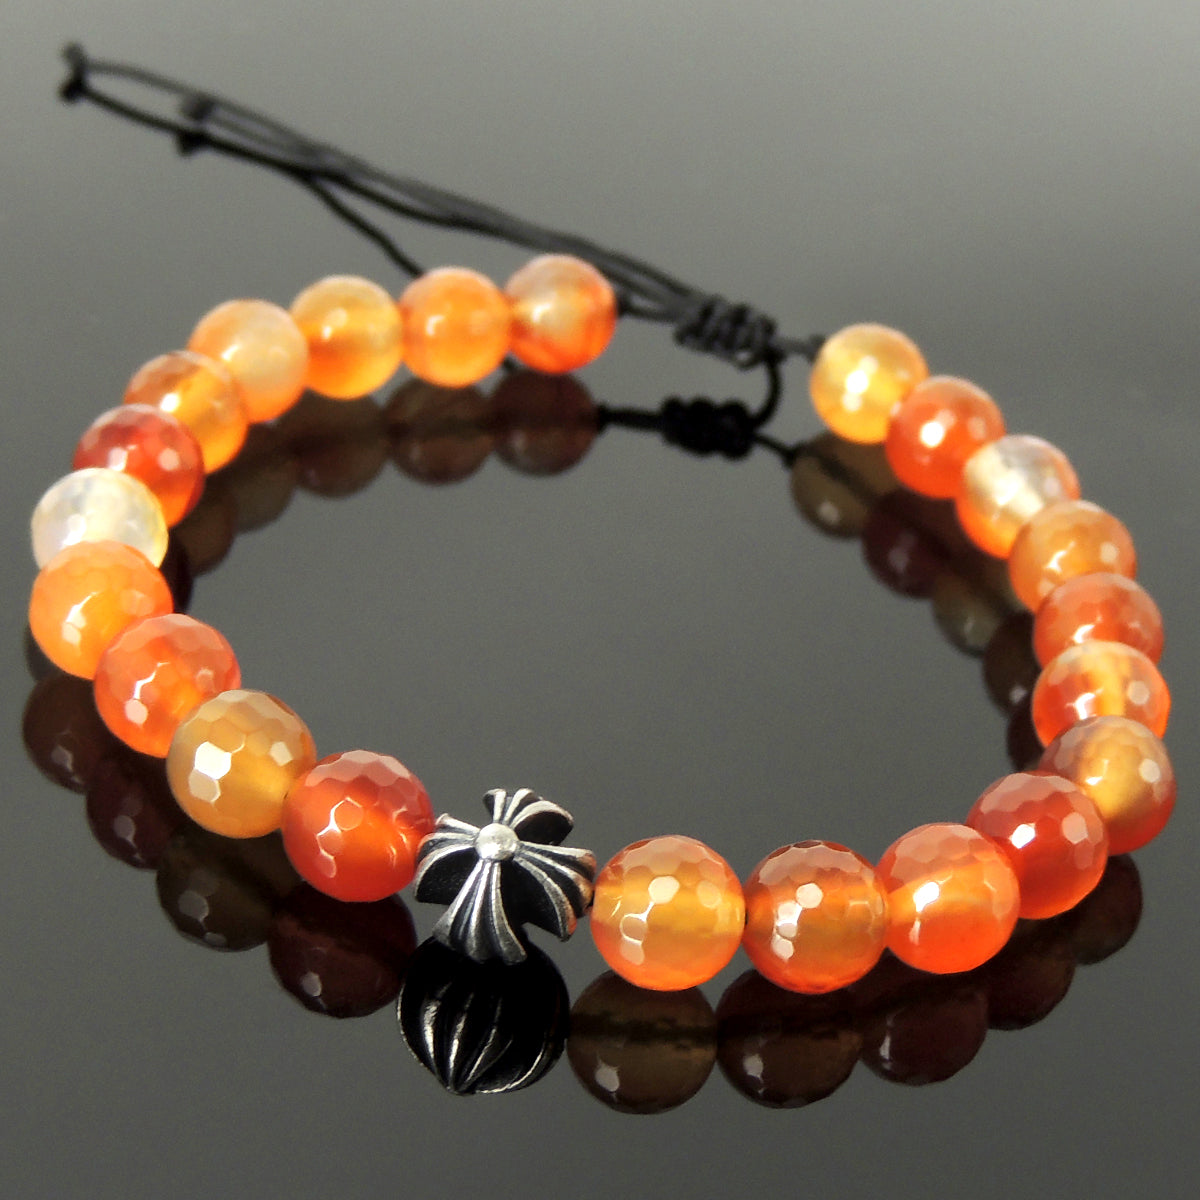 Handmade Braided Healing Gemstone Prayer Bracelet - 8mm Faceted Carnelian, Genuine S925 Sterling Silver Cross Bead, Adjustable Drawstring BR1681